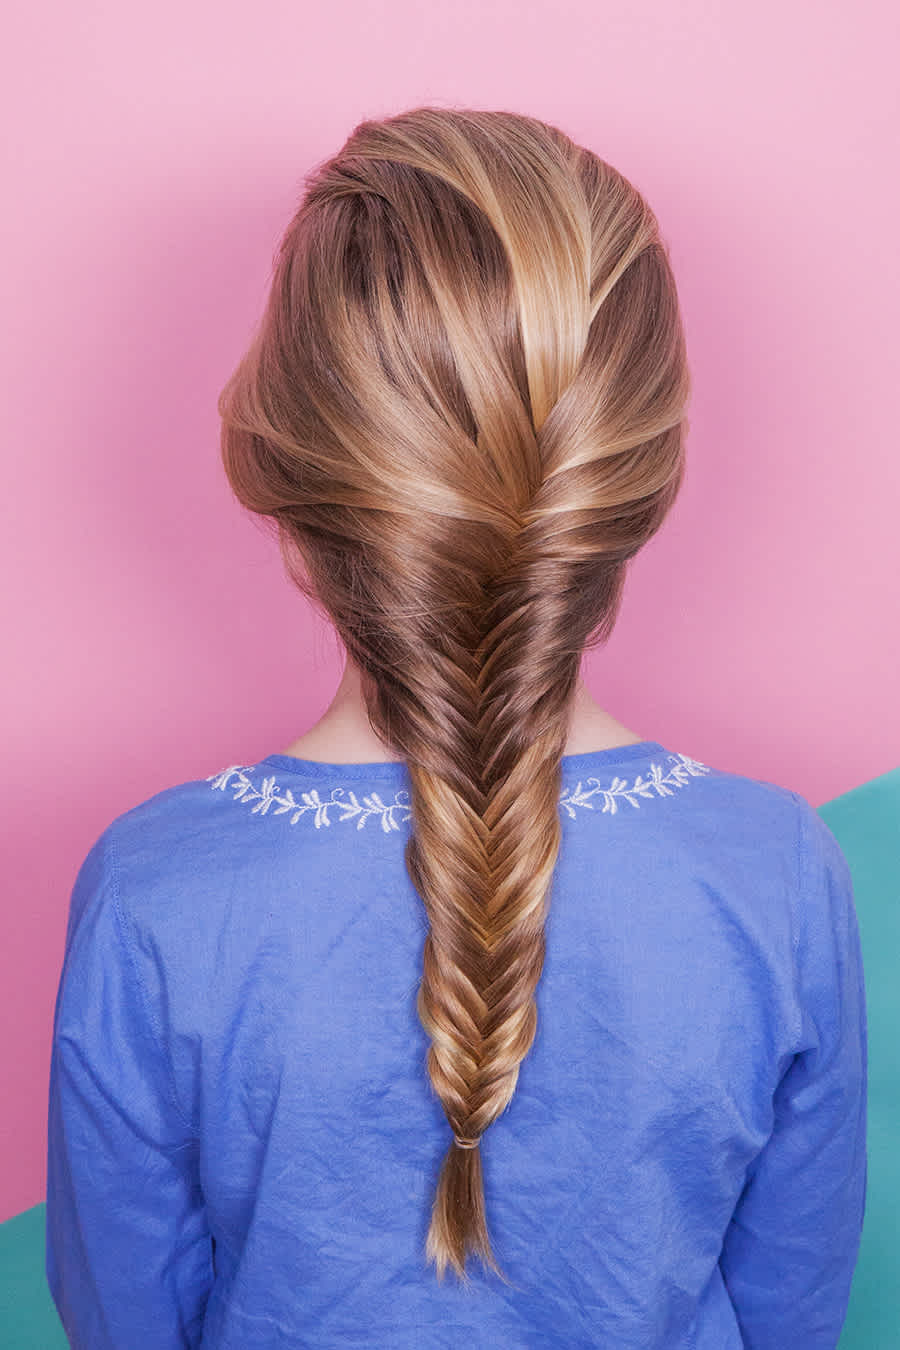 How-To: Fishtail Braid | Mom.com